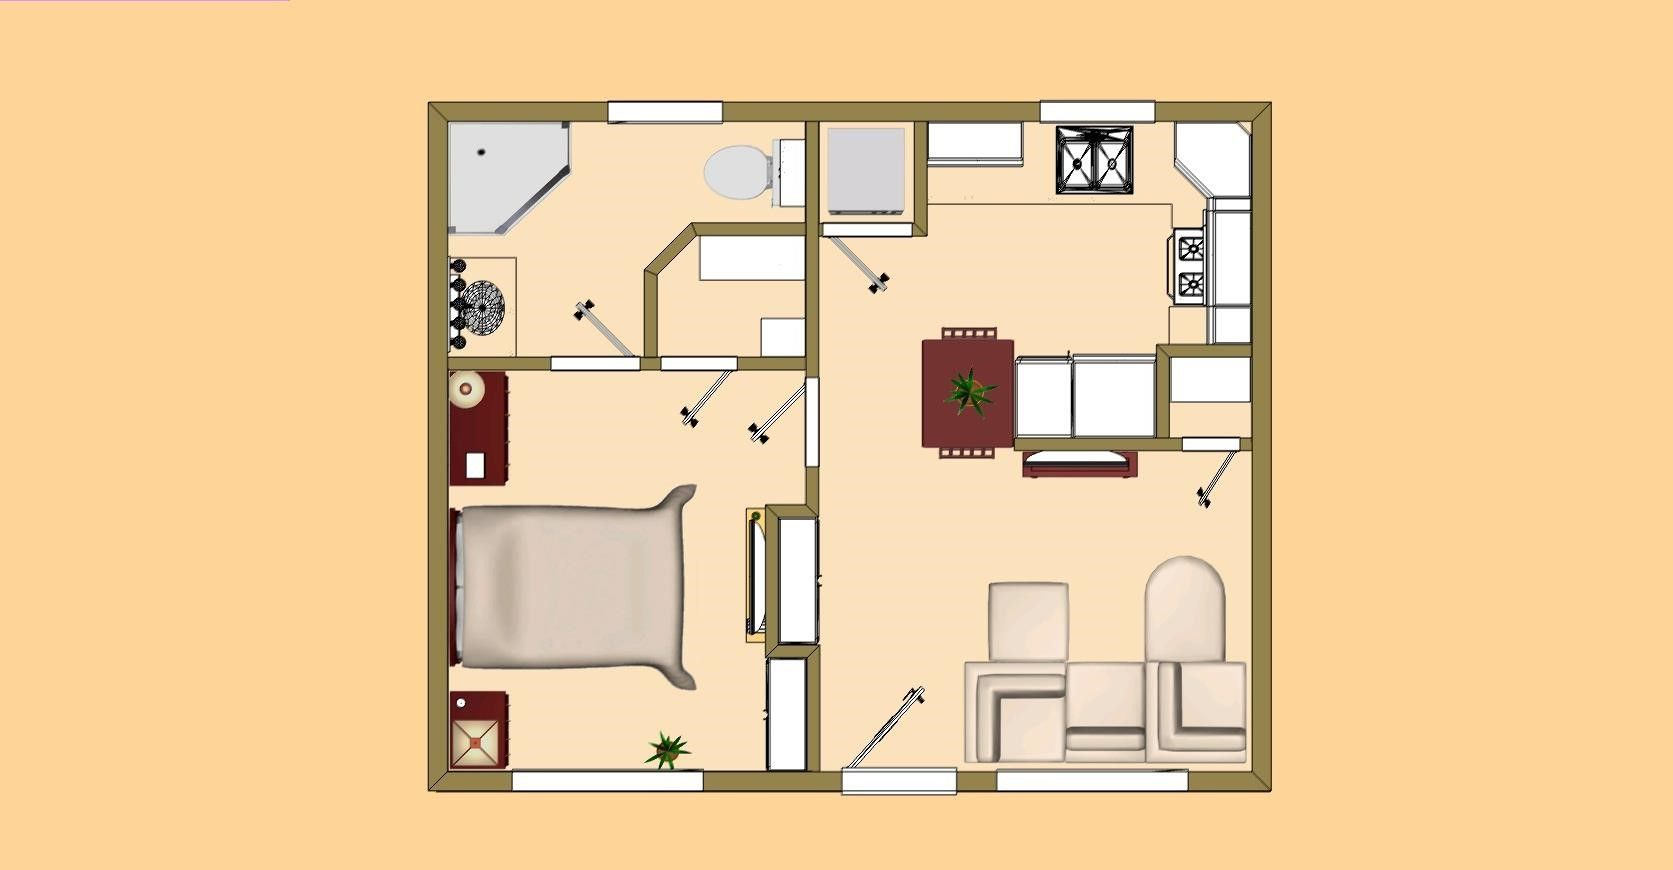 Image Result For Small Square Guest House Designs Cottage Floor Plans Small House Floor Plans Small House Plans